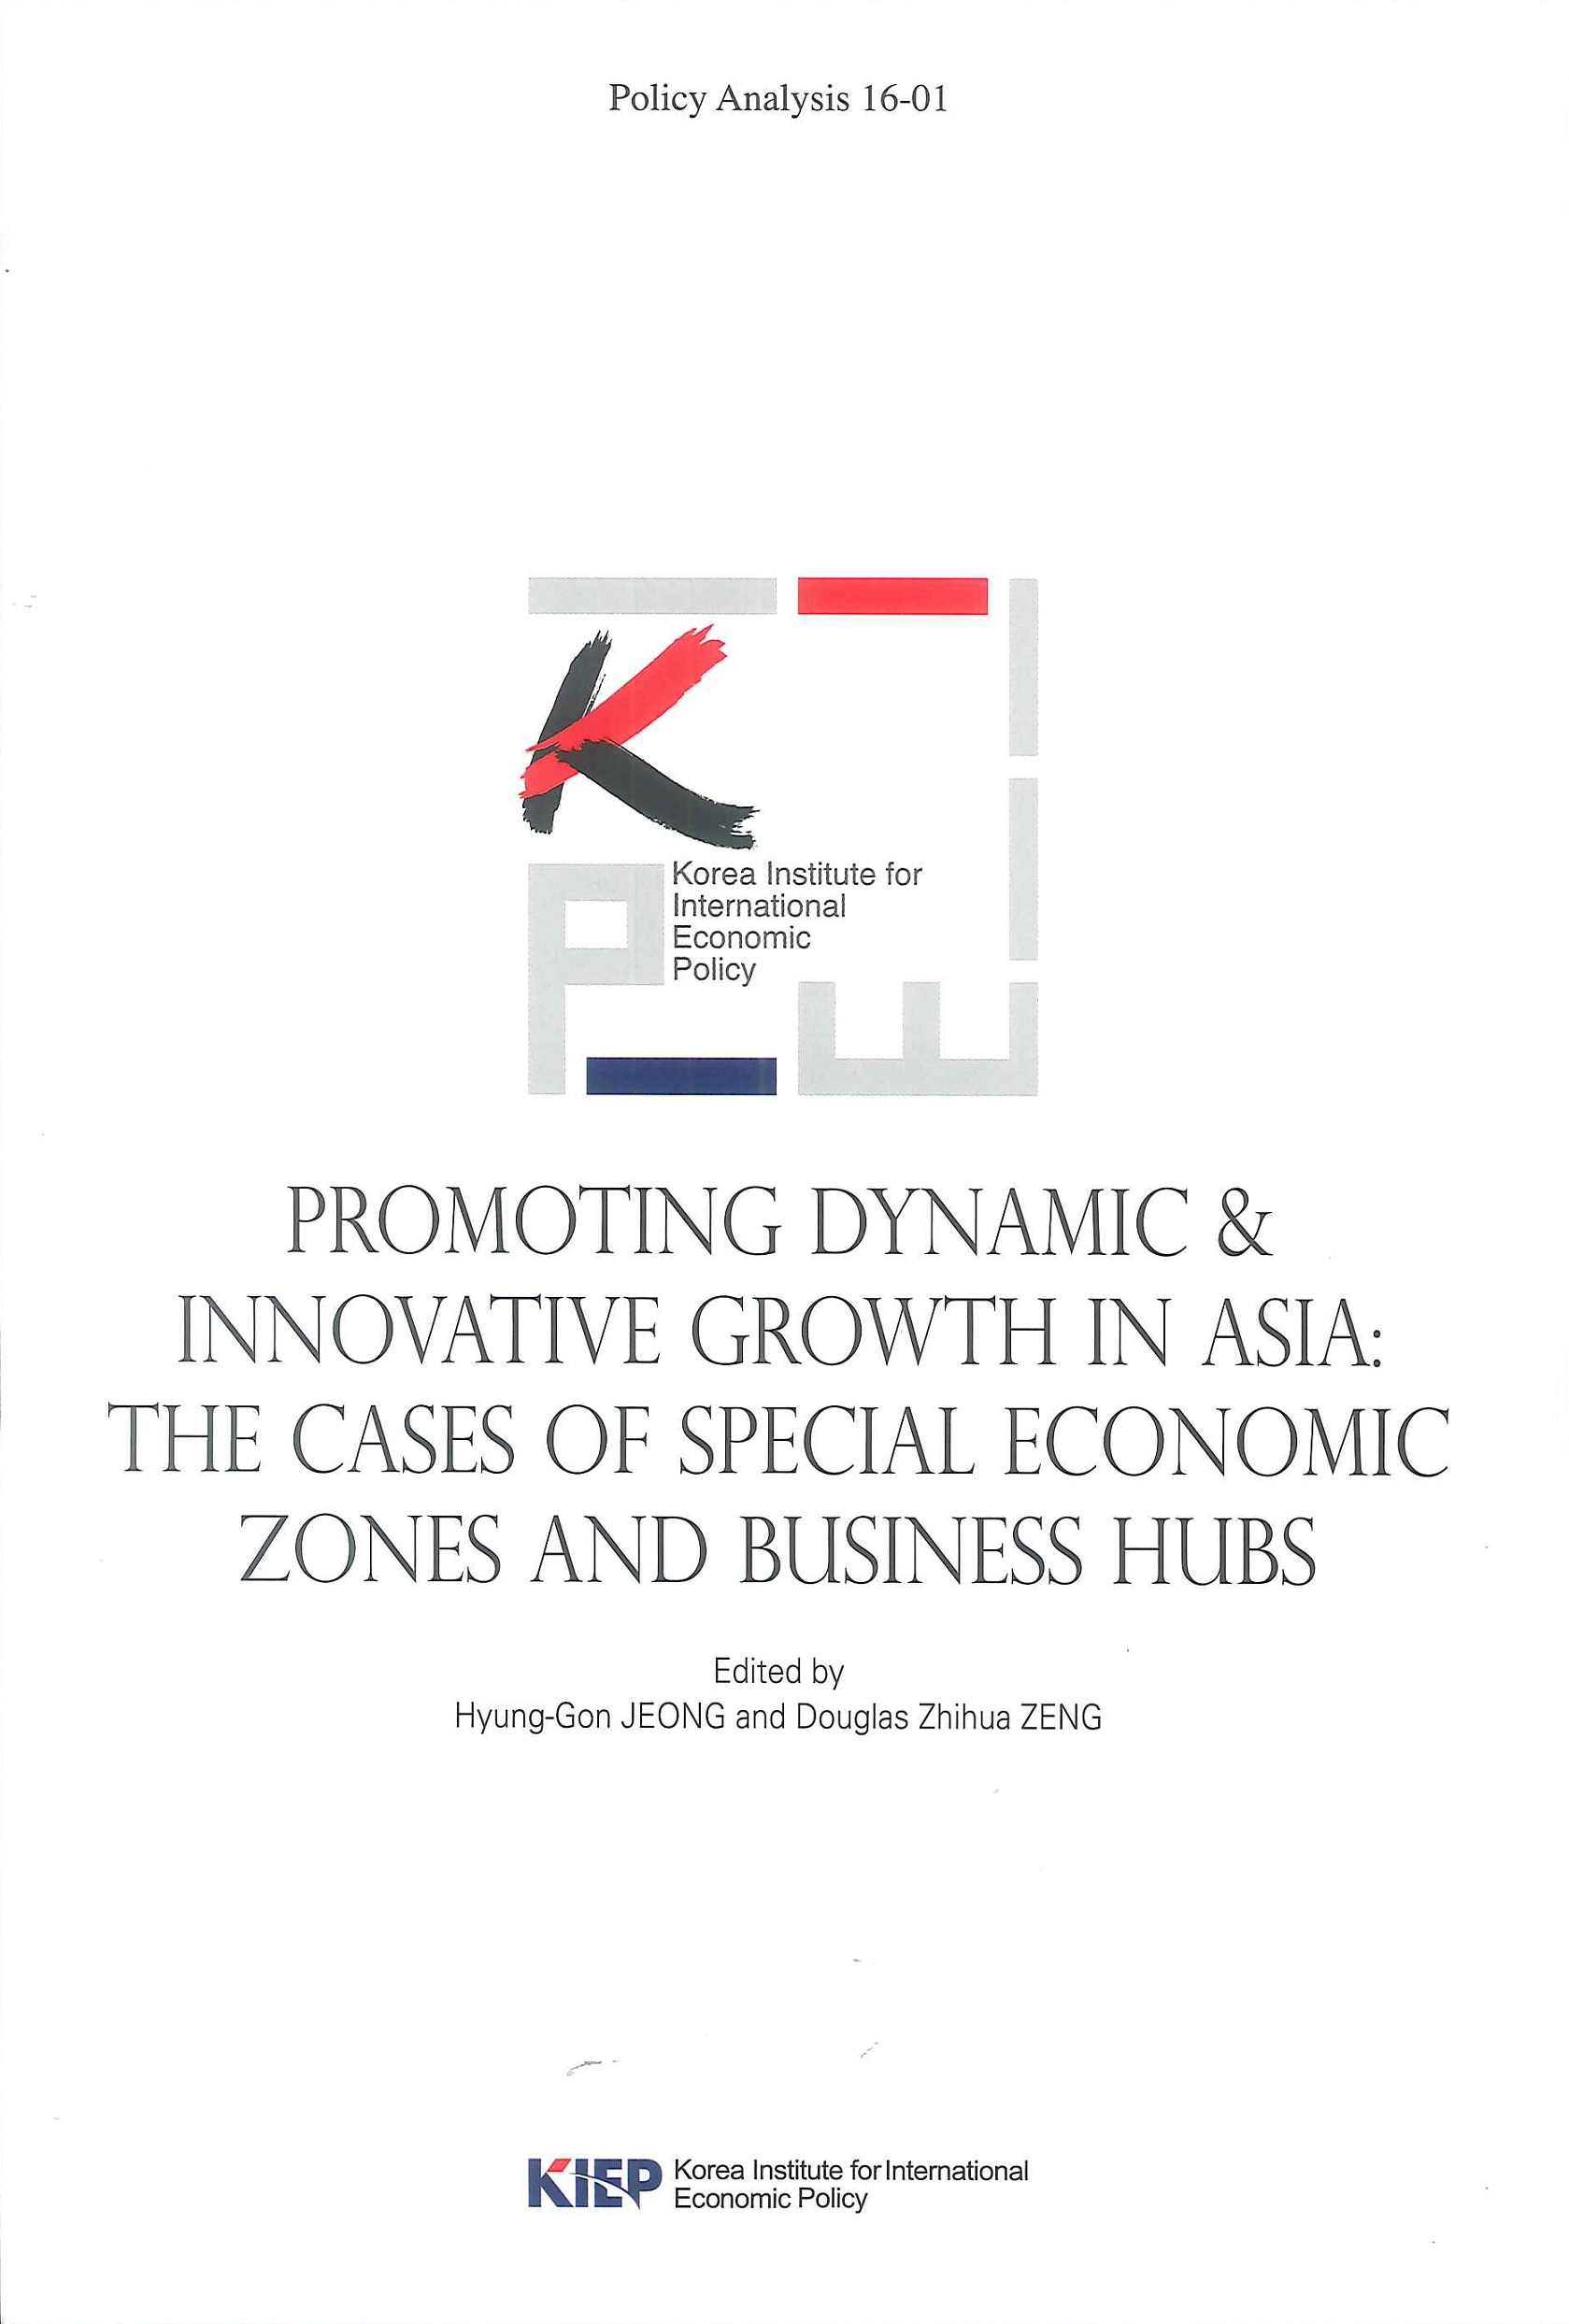 Promoting dynamic & innovative growth in Asia:the cases of special economic zones and business hubs